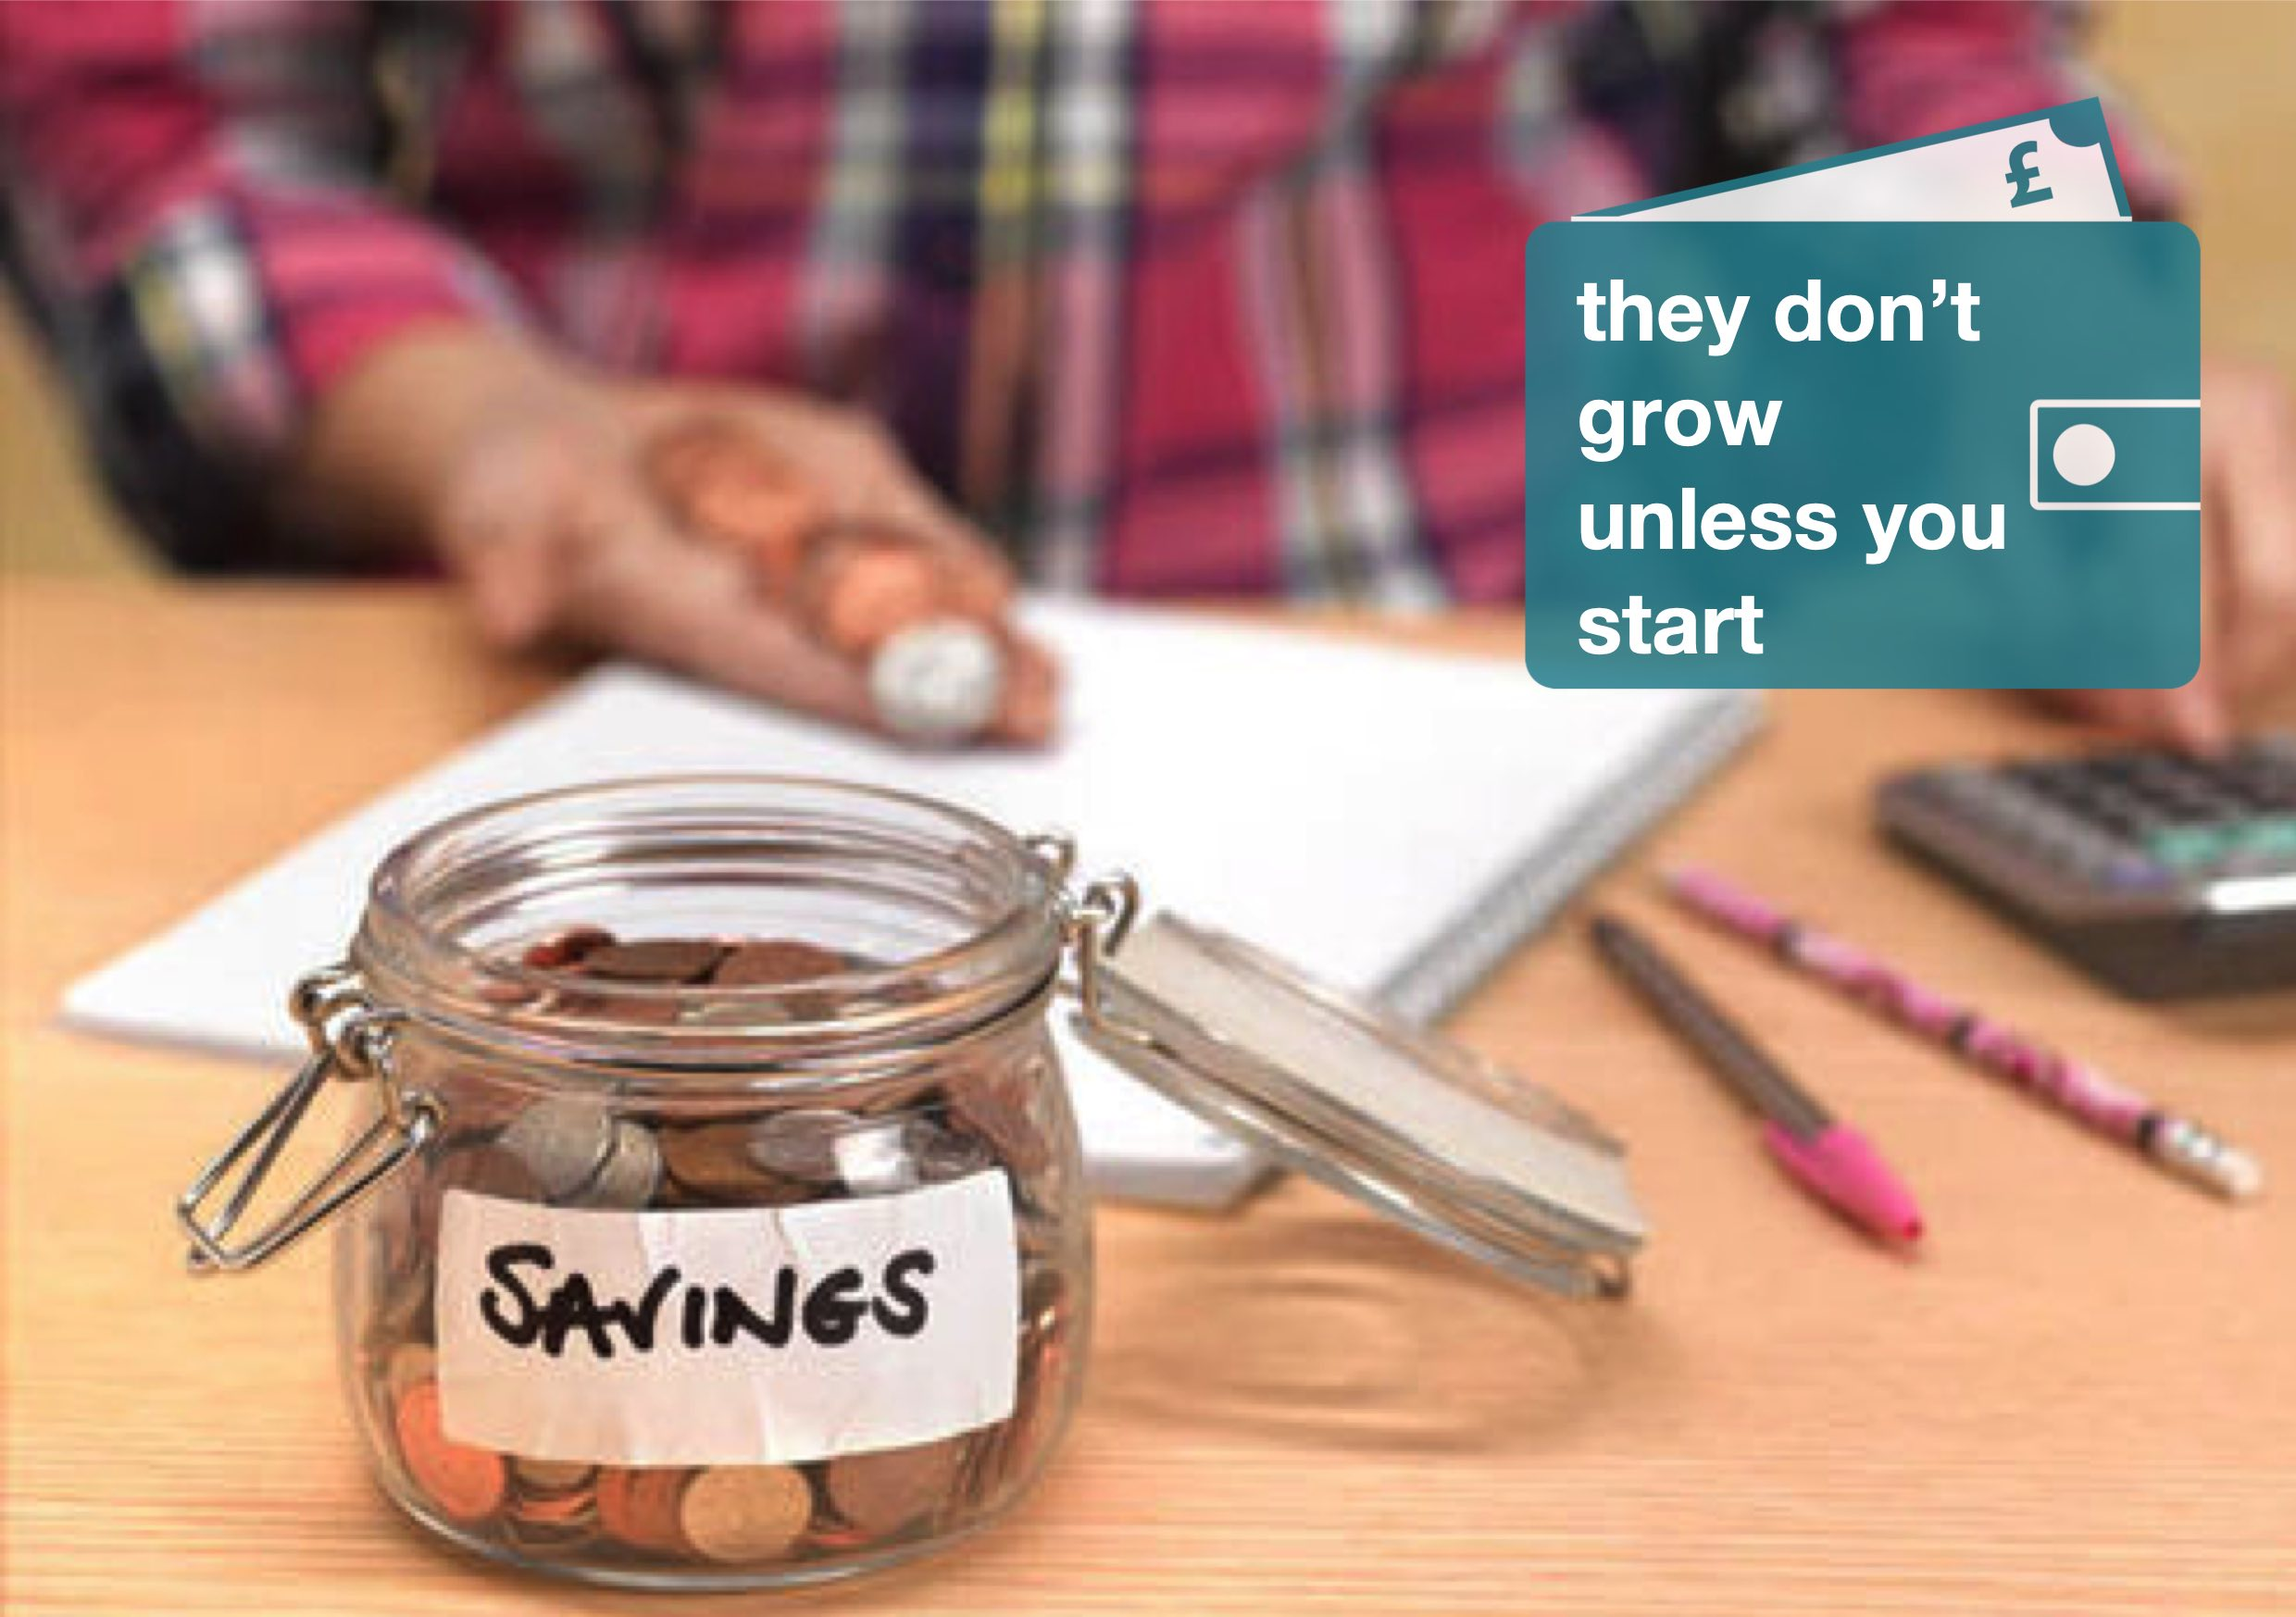 Want To Save But Can't? Here's How To Start…